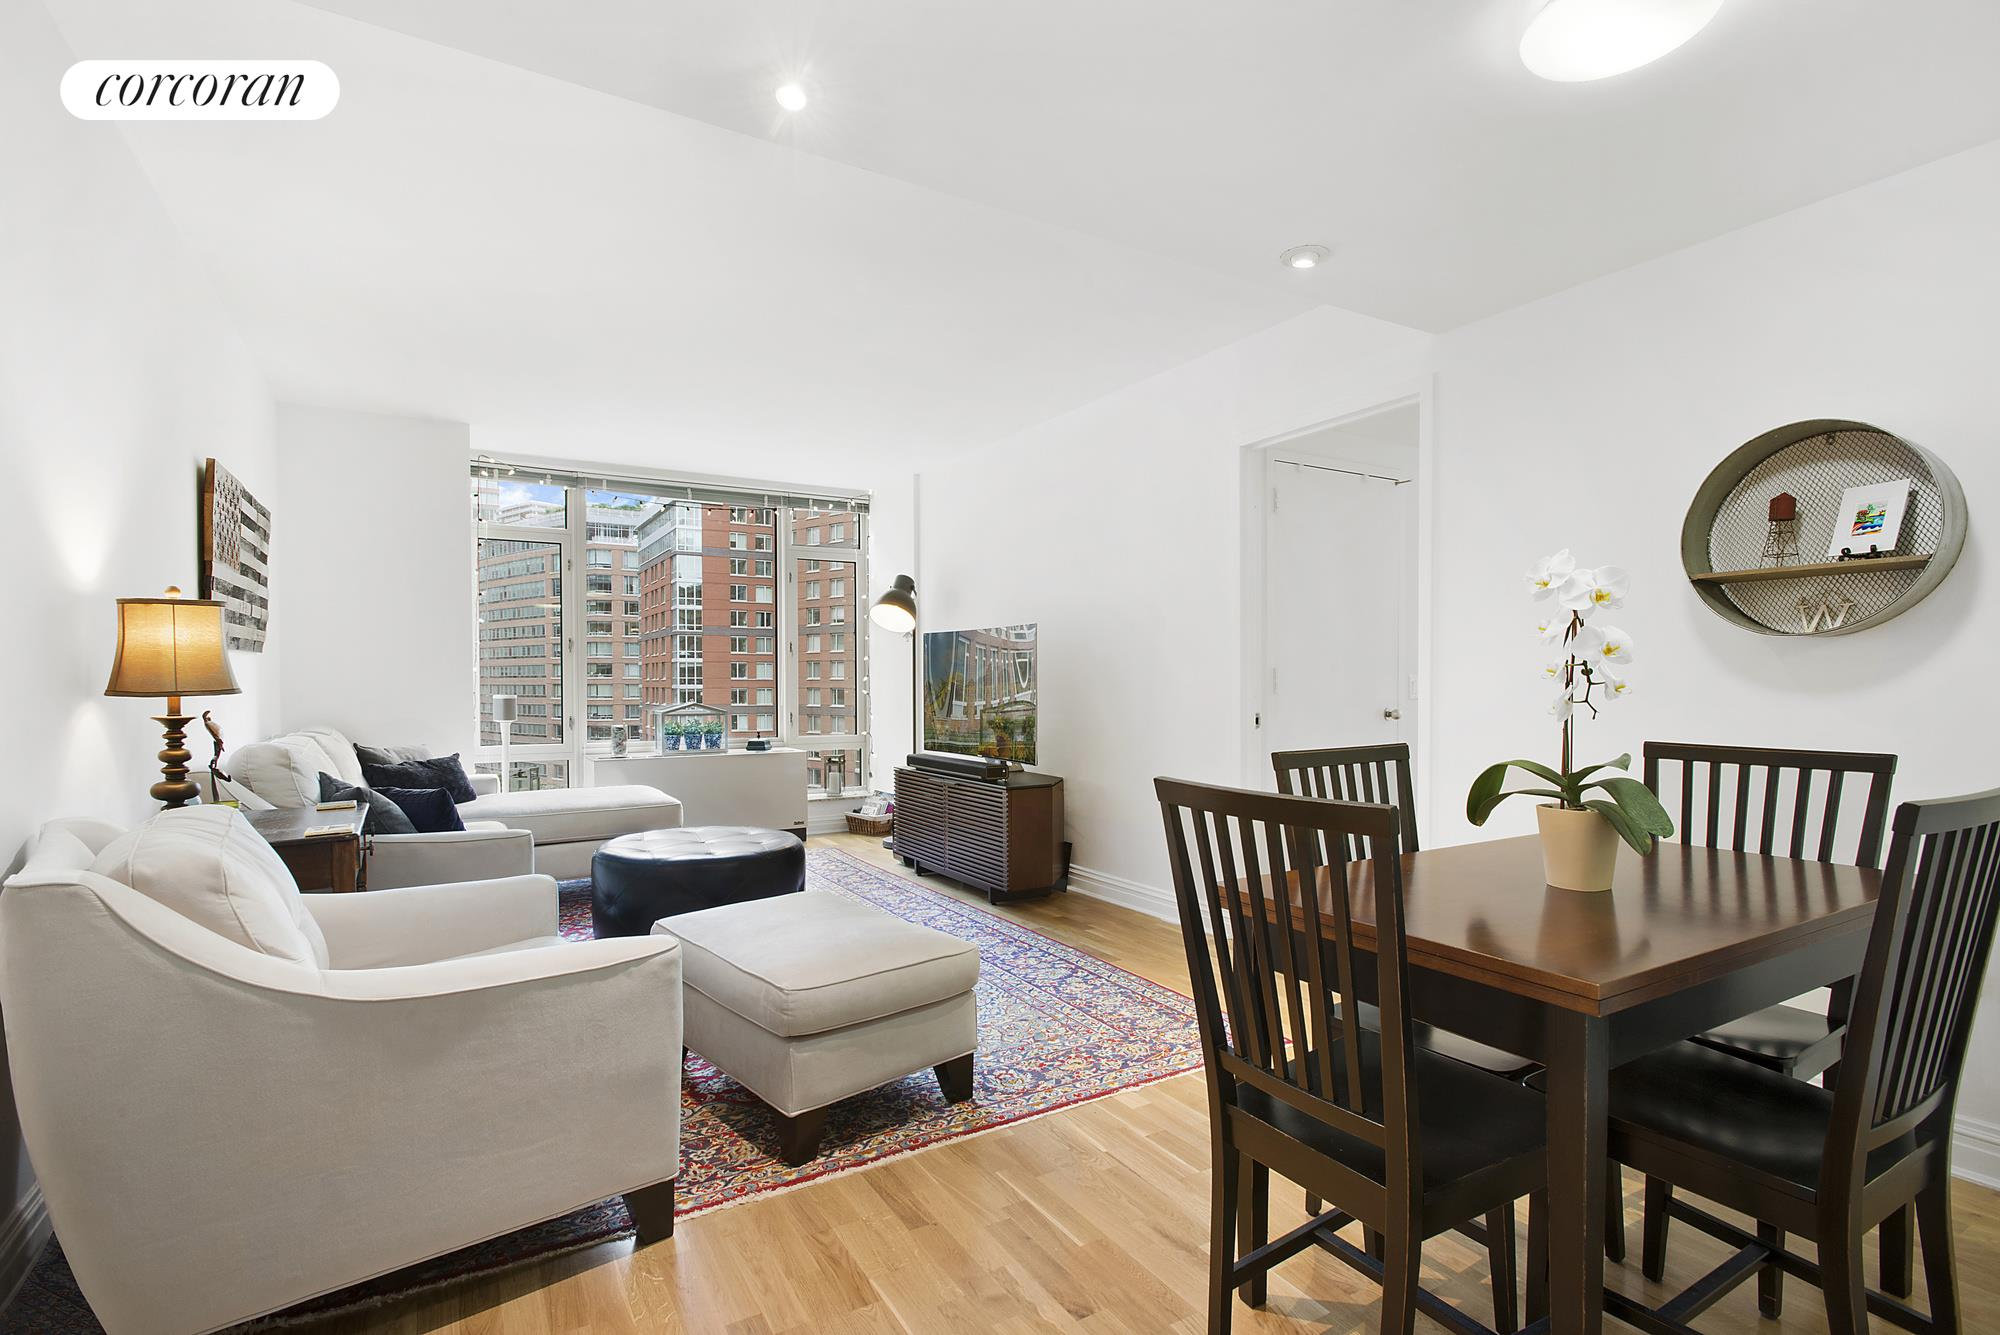 Corcoran, 325 NORTH END AVE, Apt. 10-N, Battery Park City Rentals ...